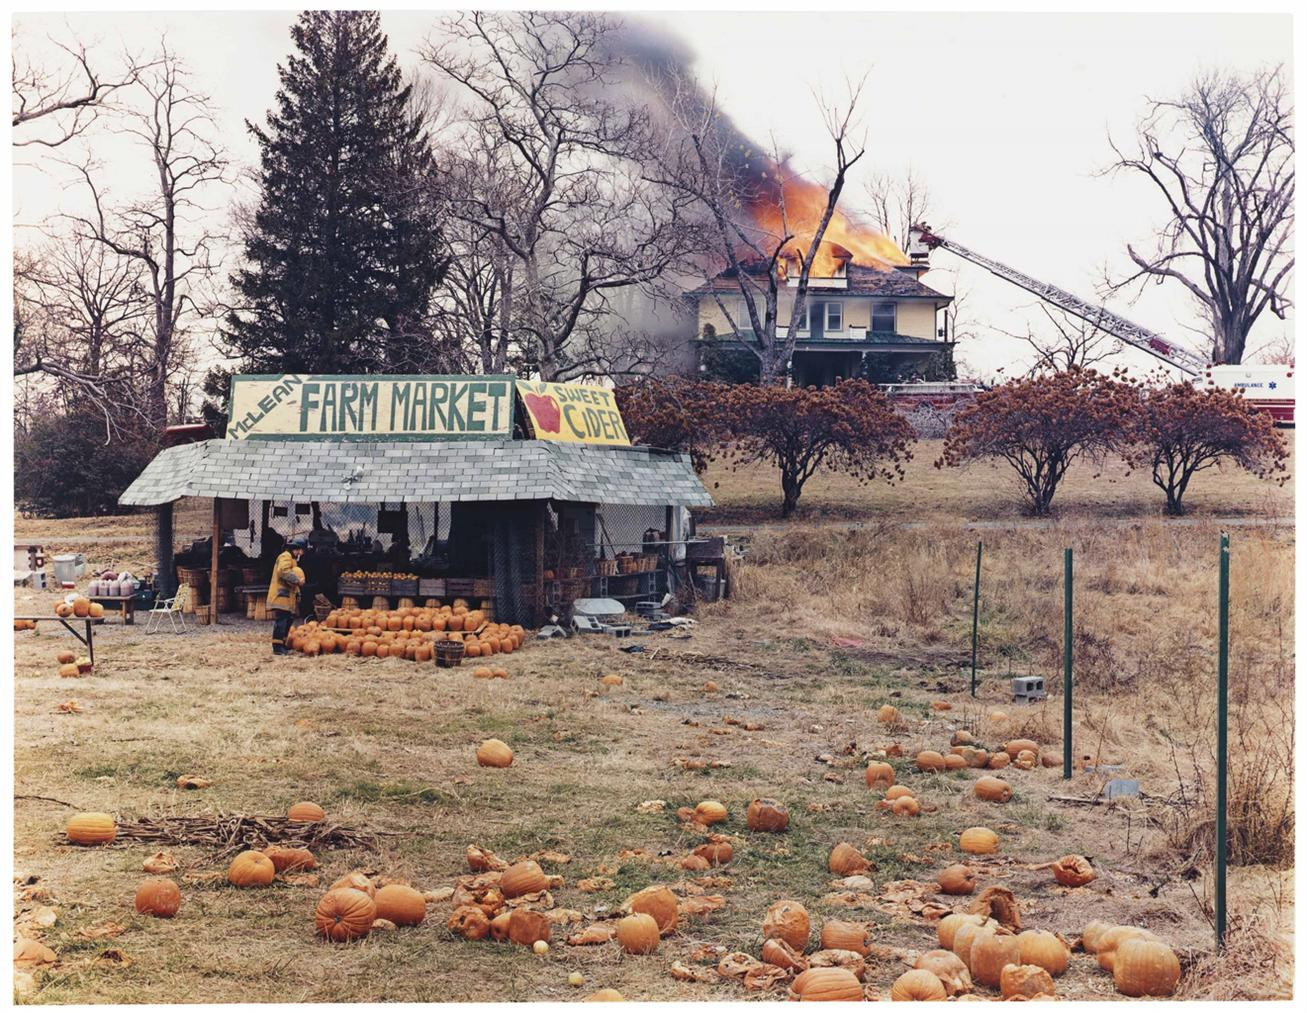 Joel Sternfeld-Mclean, Virginia, December 1978-1978